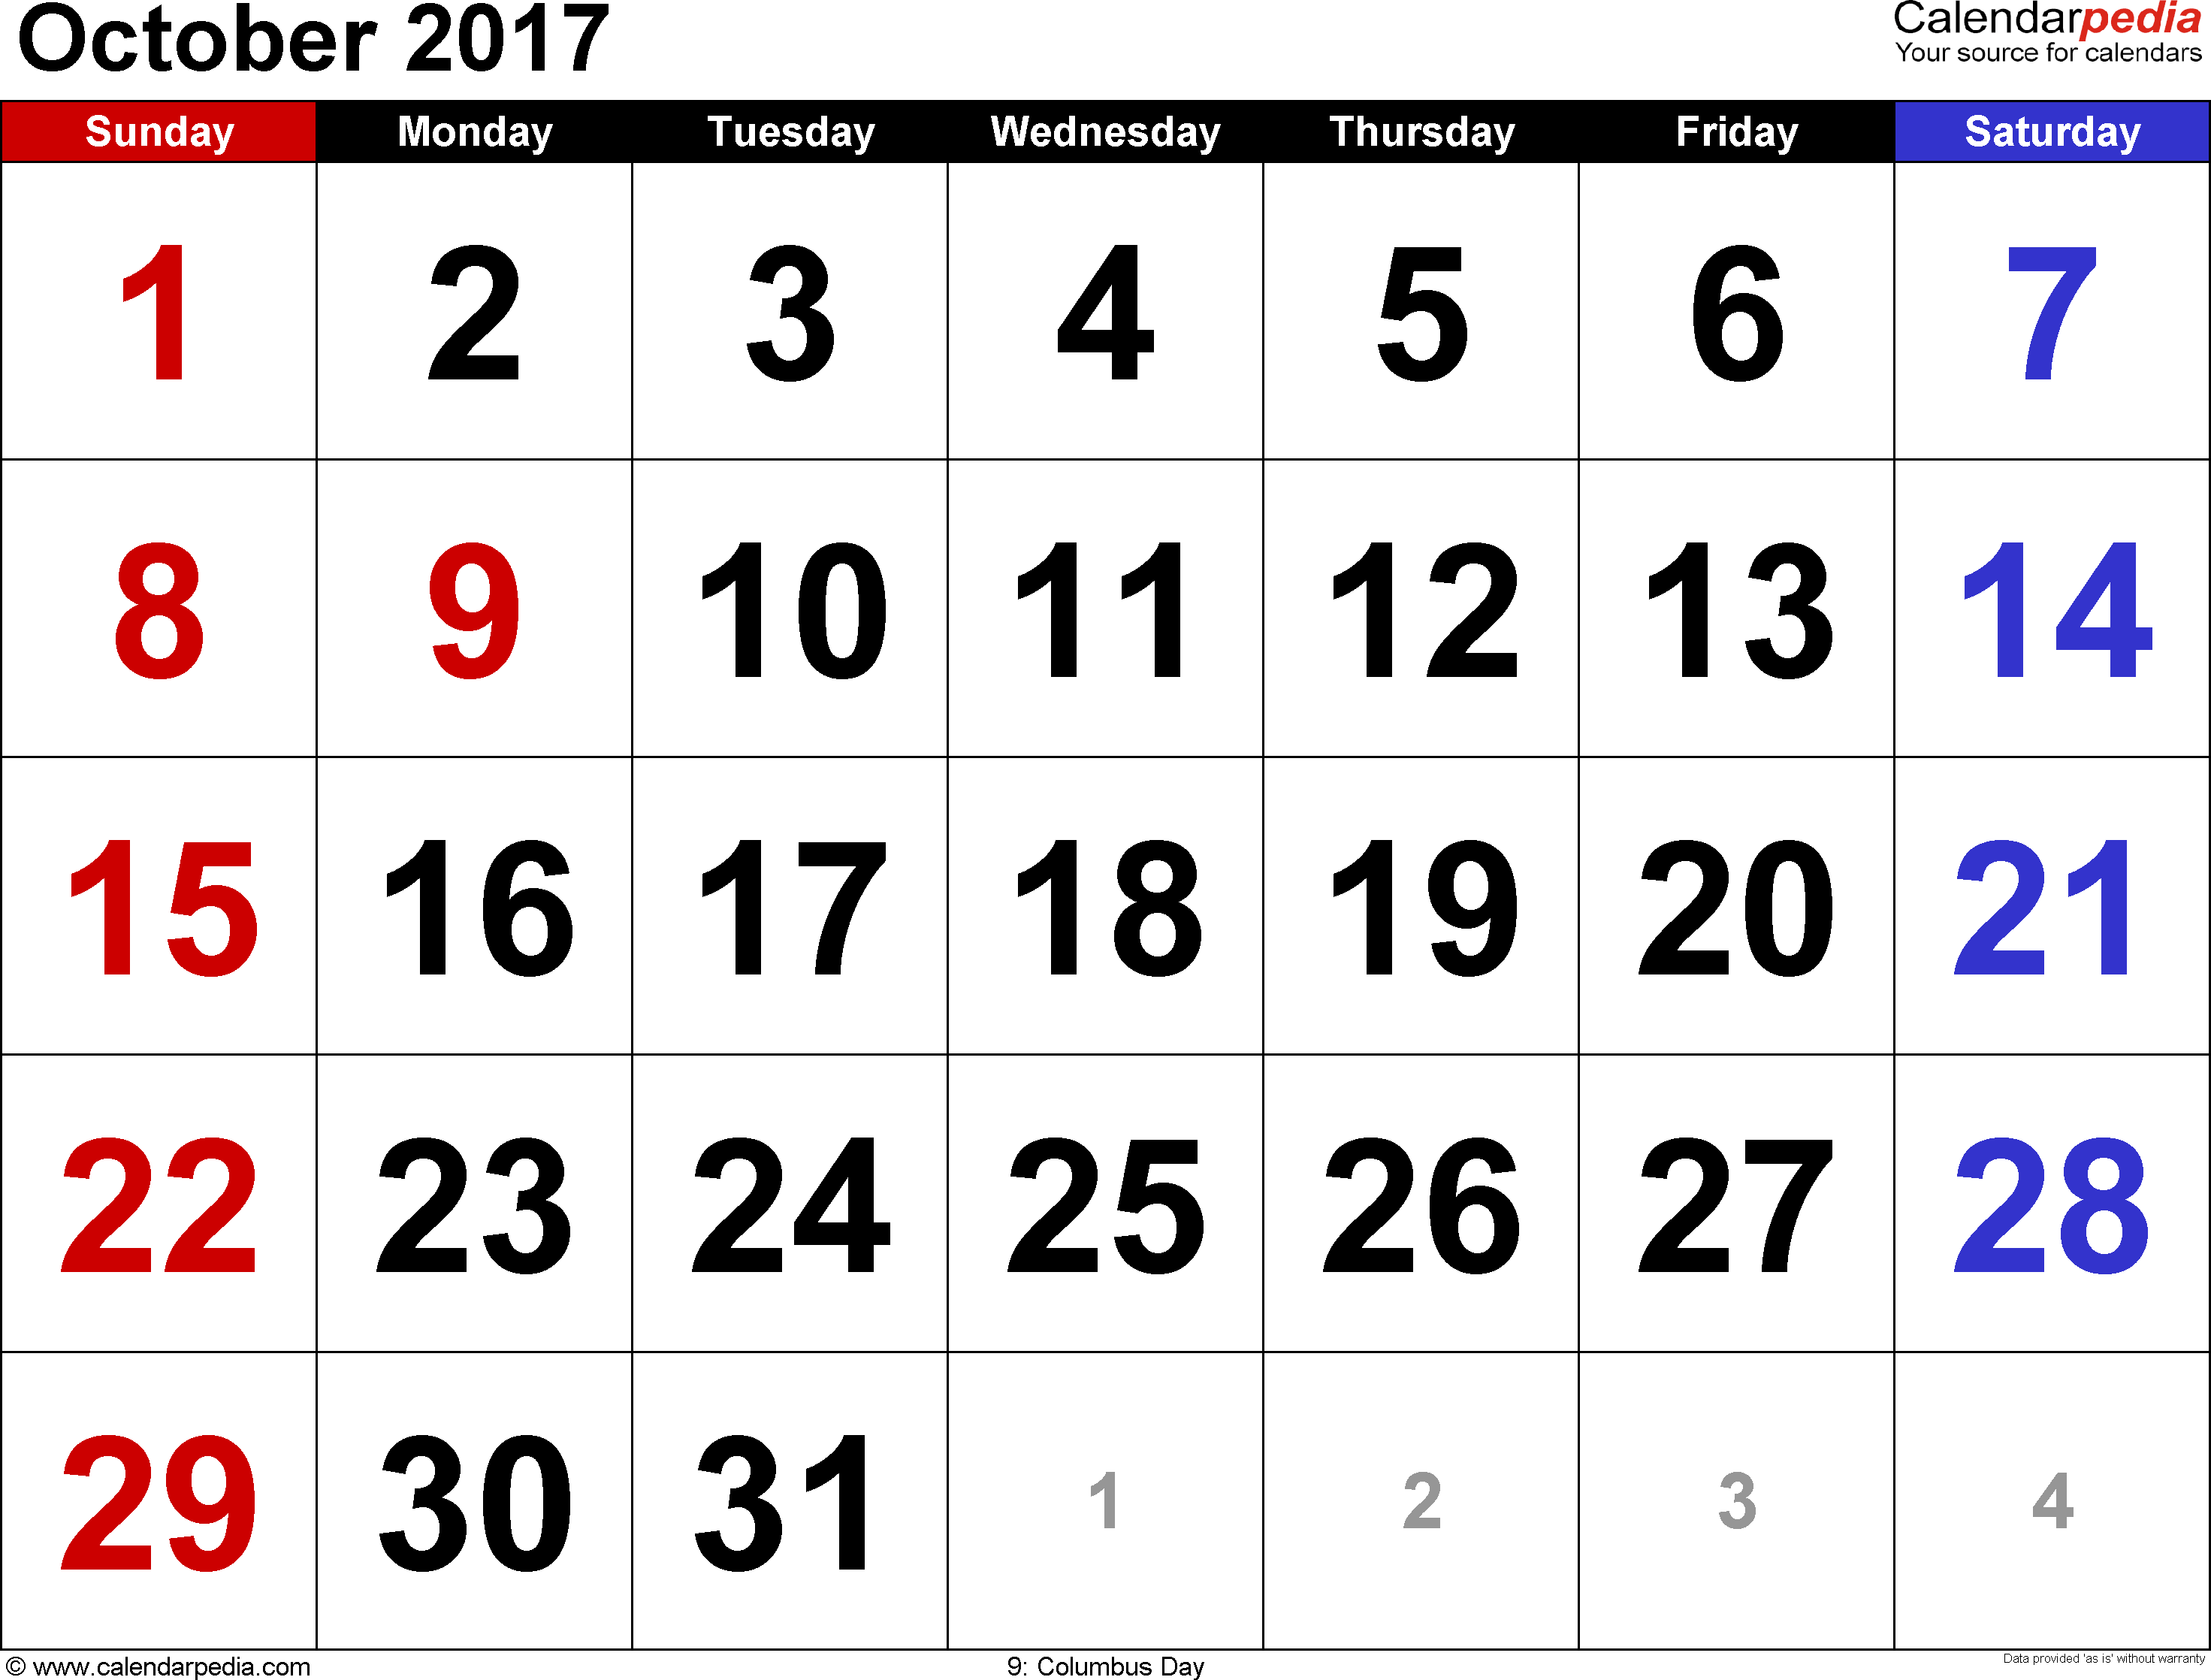 Free Calendars 2017 Printable Editable PDF Word Excel ...